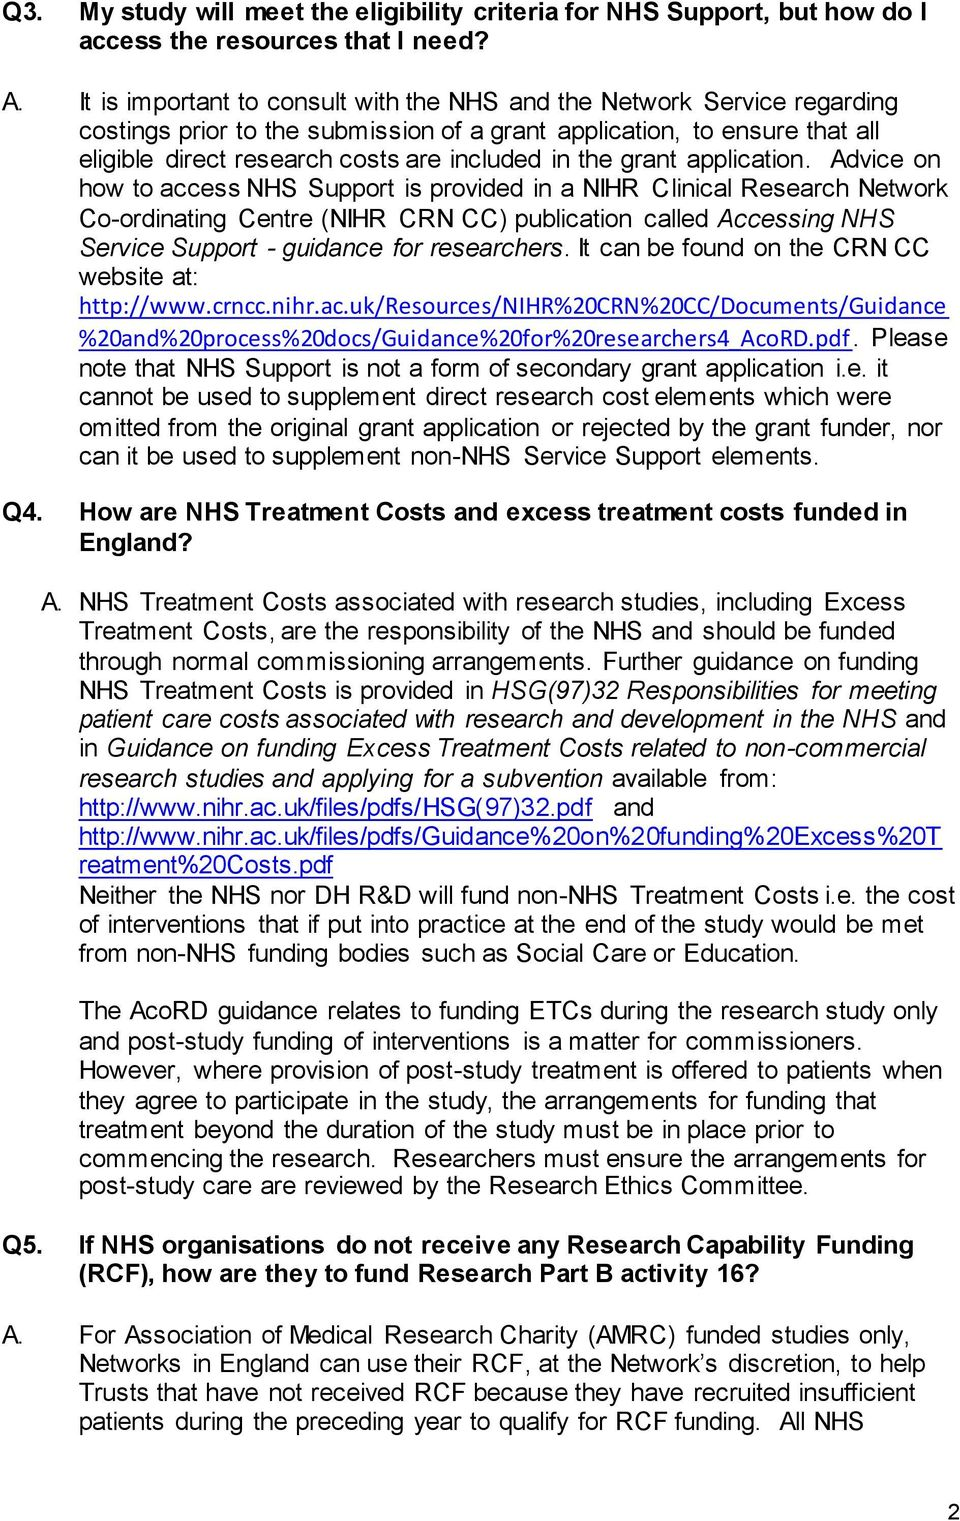 the grant application. Advice on how to access NHS Support is provided in a NIHR Network Co-ordinating Centre (NIHR CRN CC) publication called Accessing NHS Service Support - guidance for researchers.